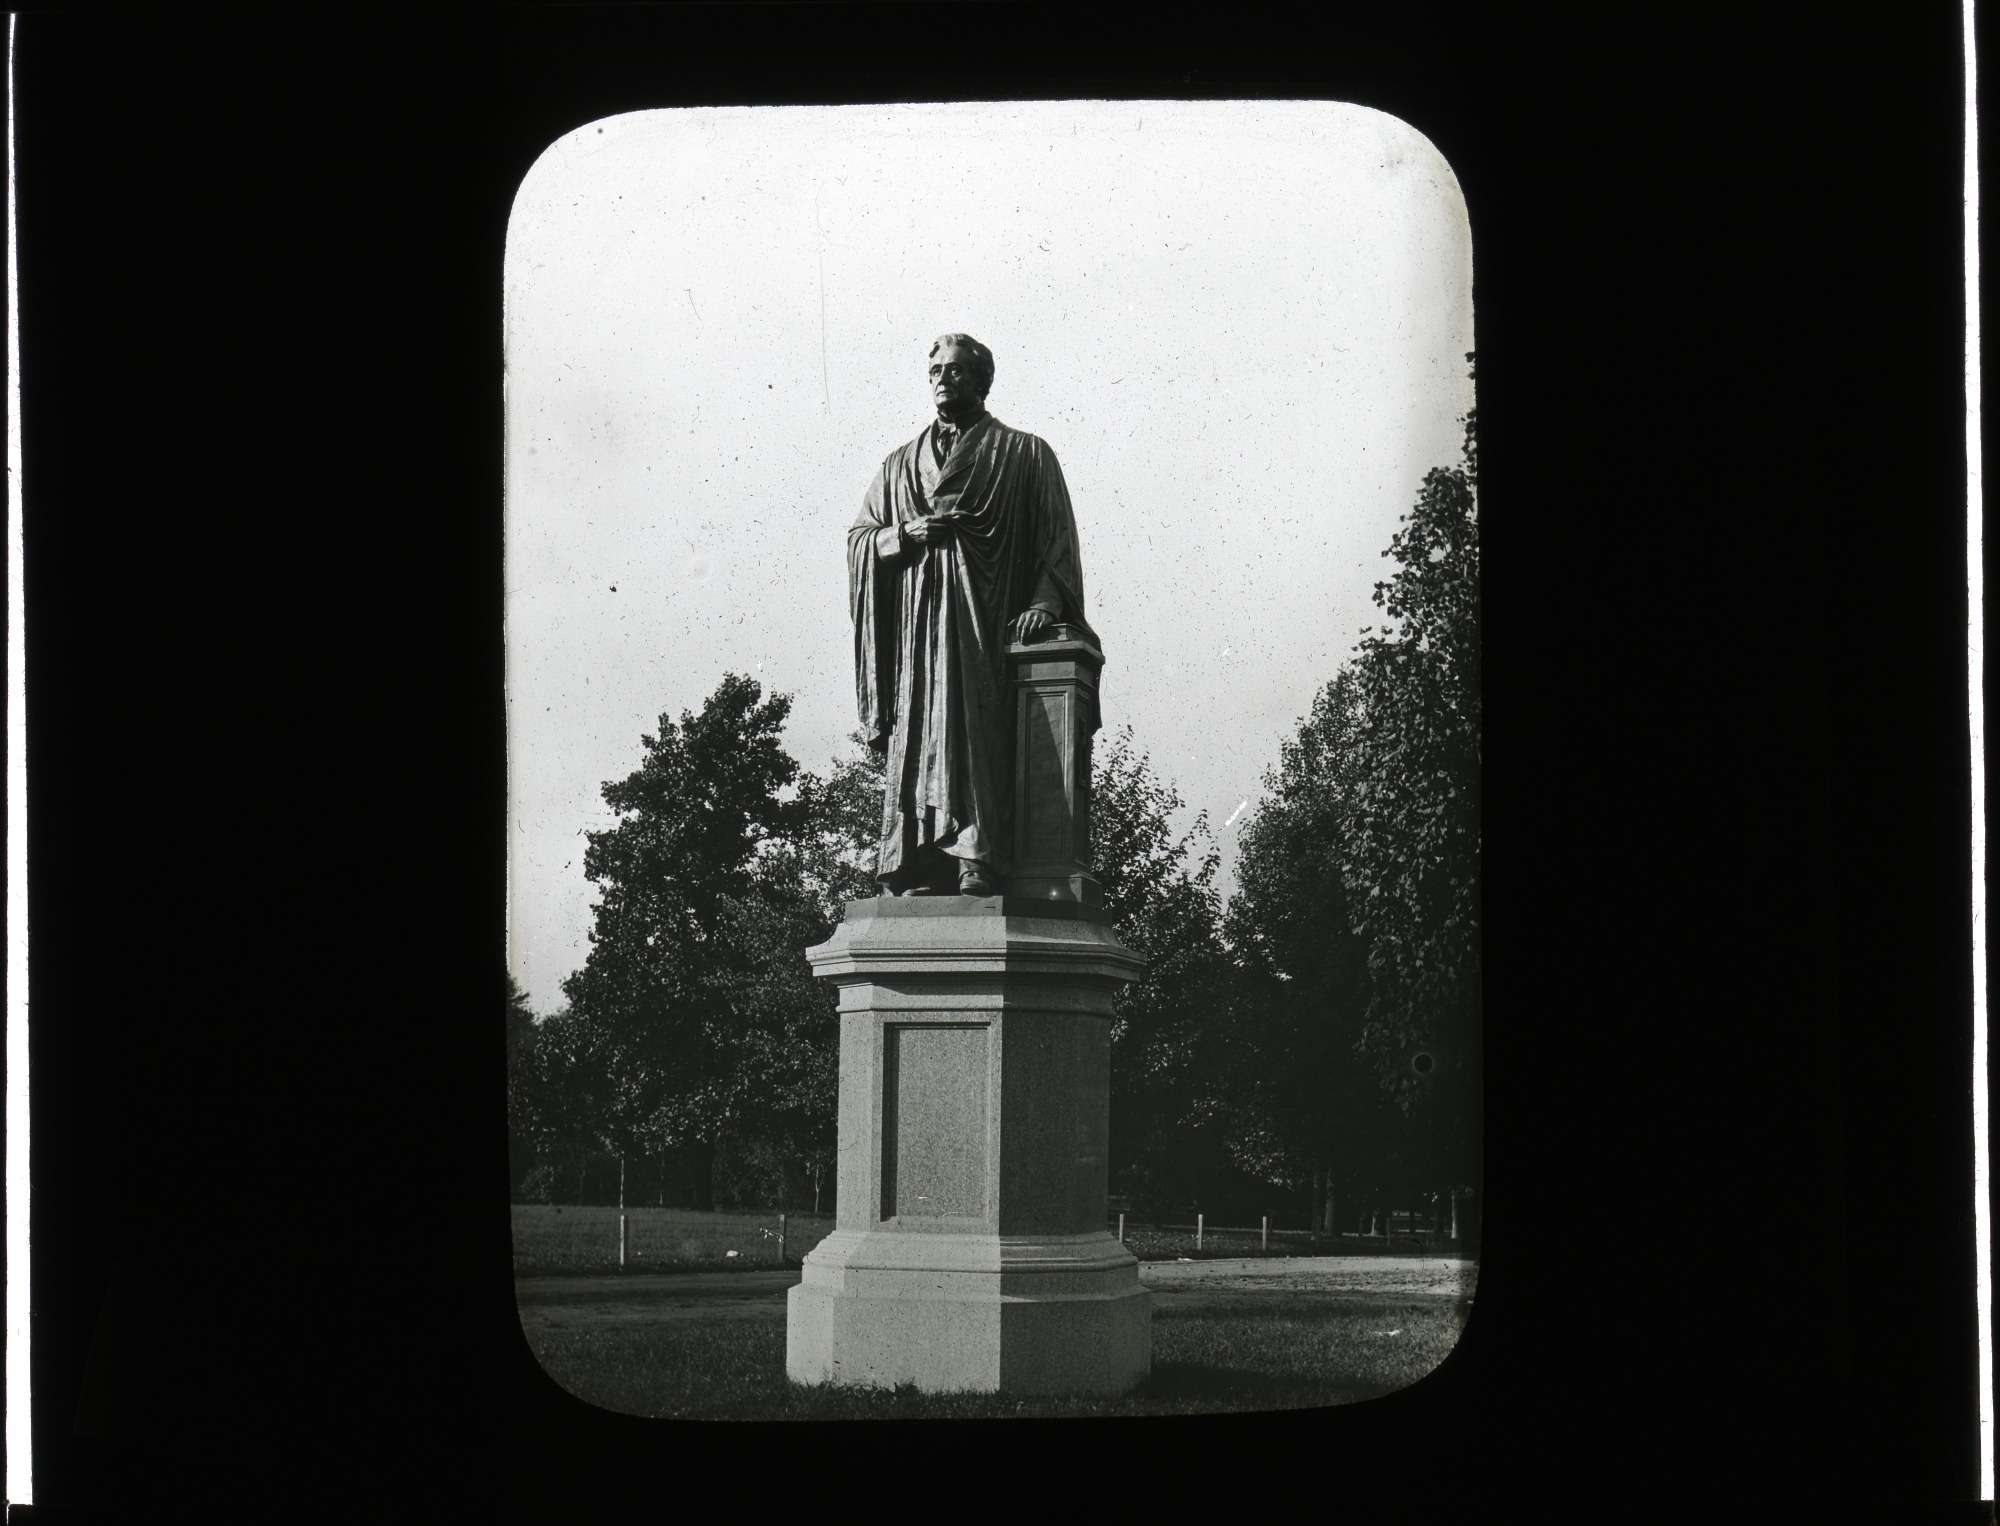 Joseph Henry Statue, 1883, Smithsonian Institution Archives, SIA Acc. 12-492 [SIA2012-2797].